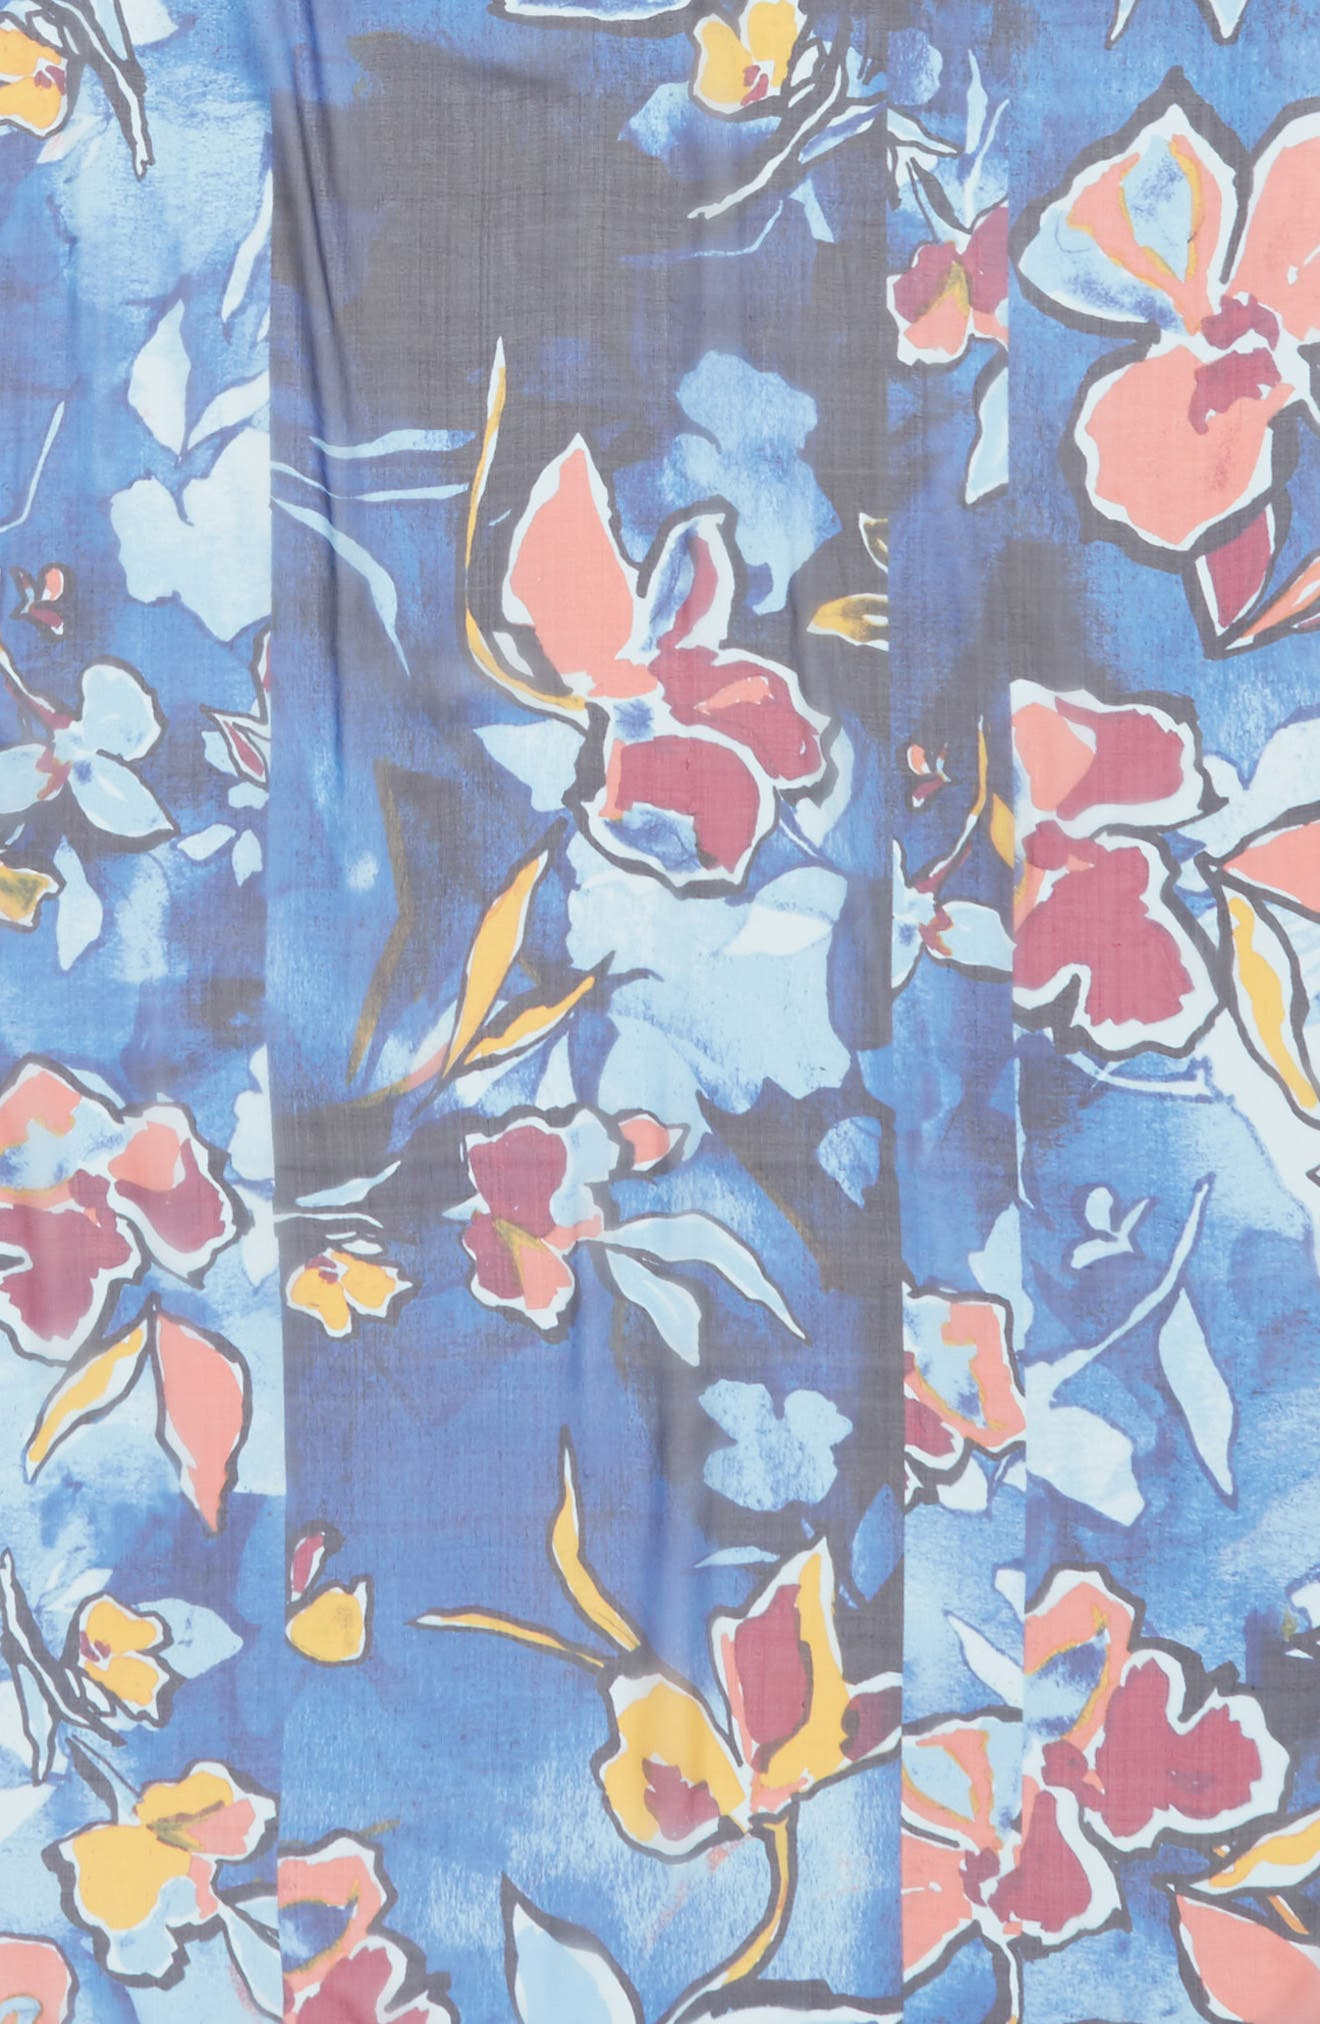 Silk Chiffon Oblong Scarf,                             Alternate thumbnail 4, color,                             Blue Textured Blooms